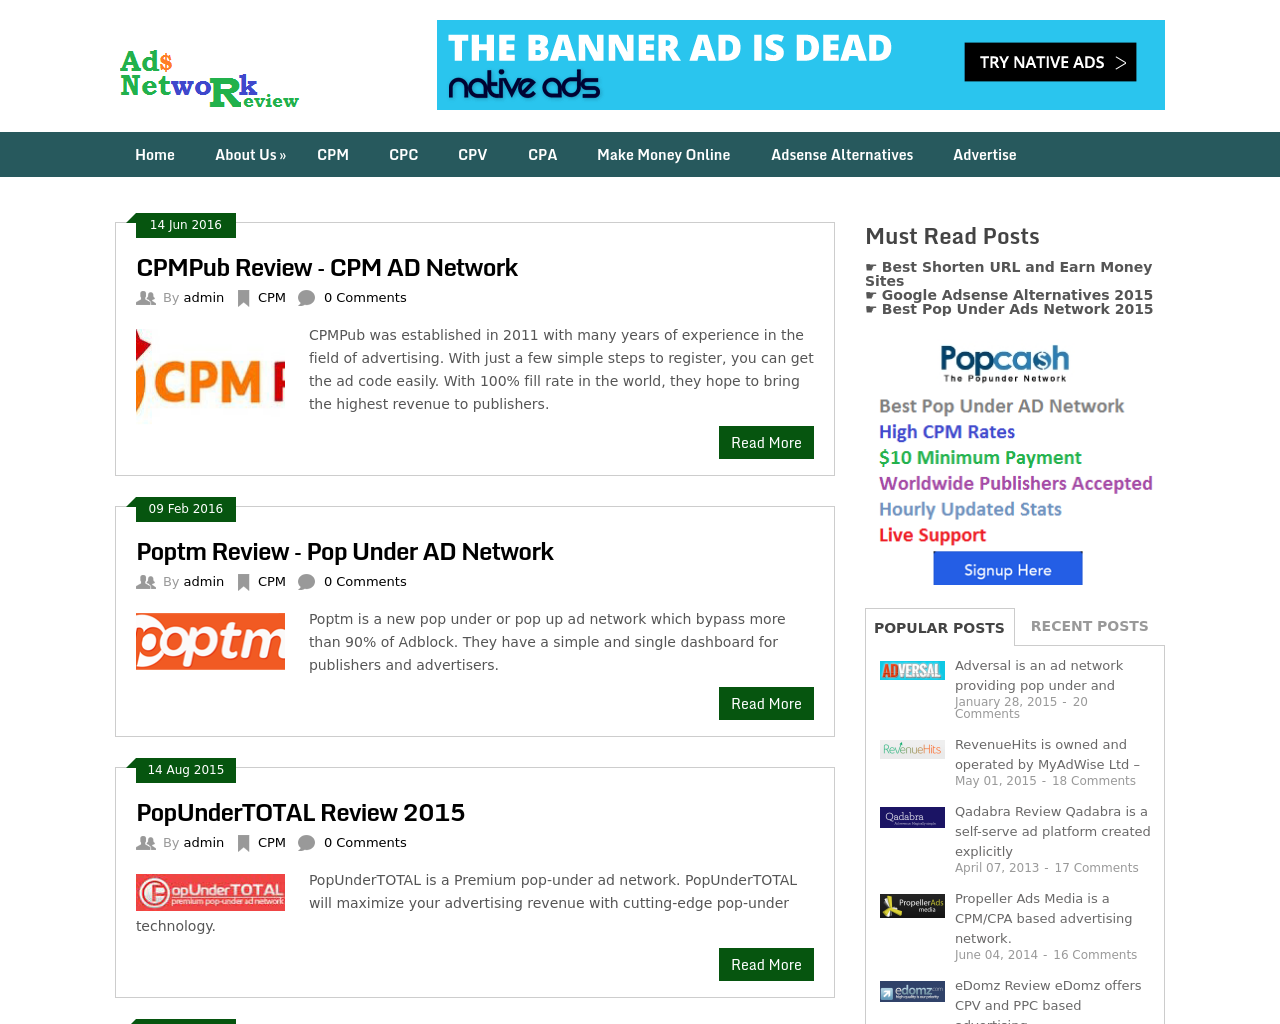 Ads-Network-Review-Advertising-Reviews-Pricing